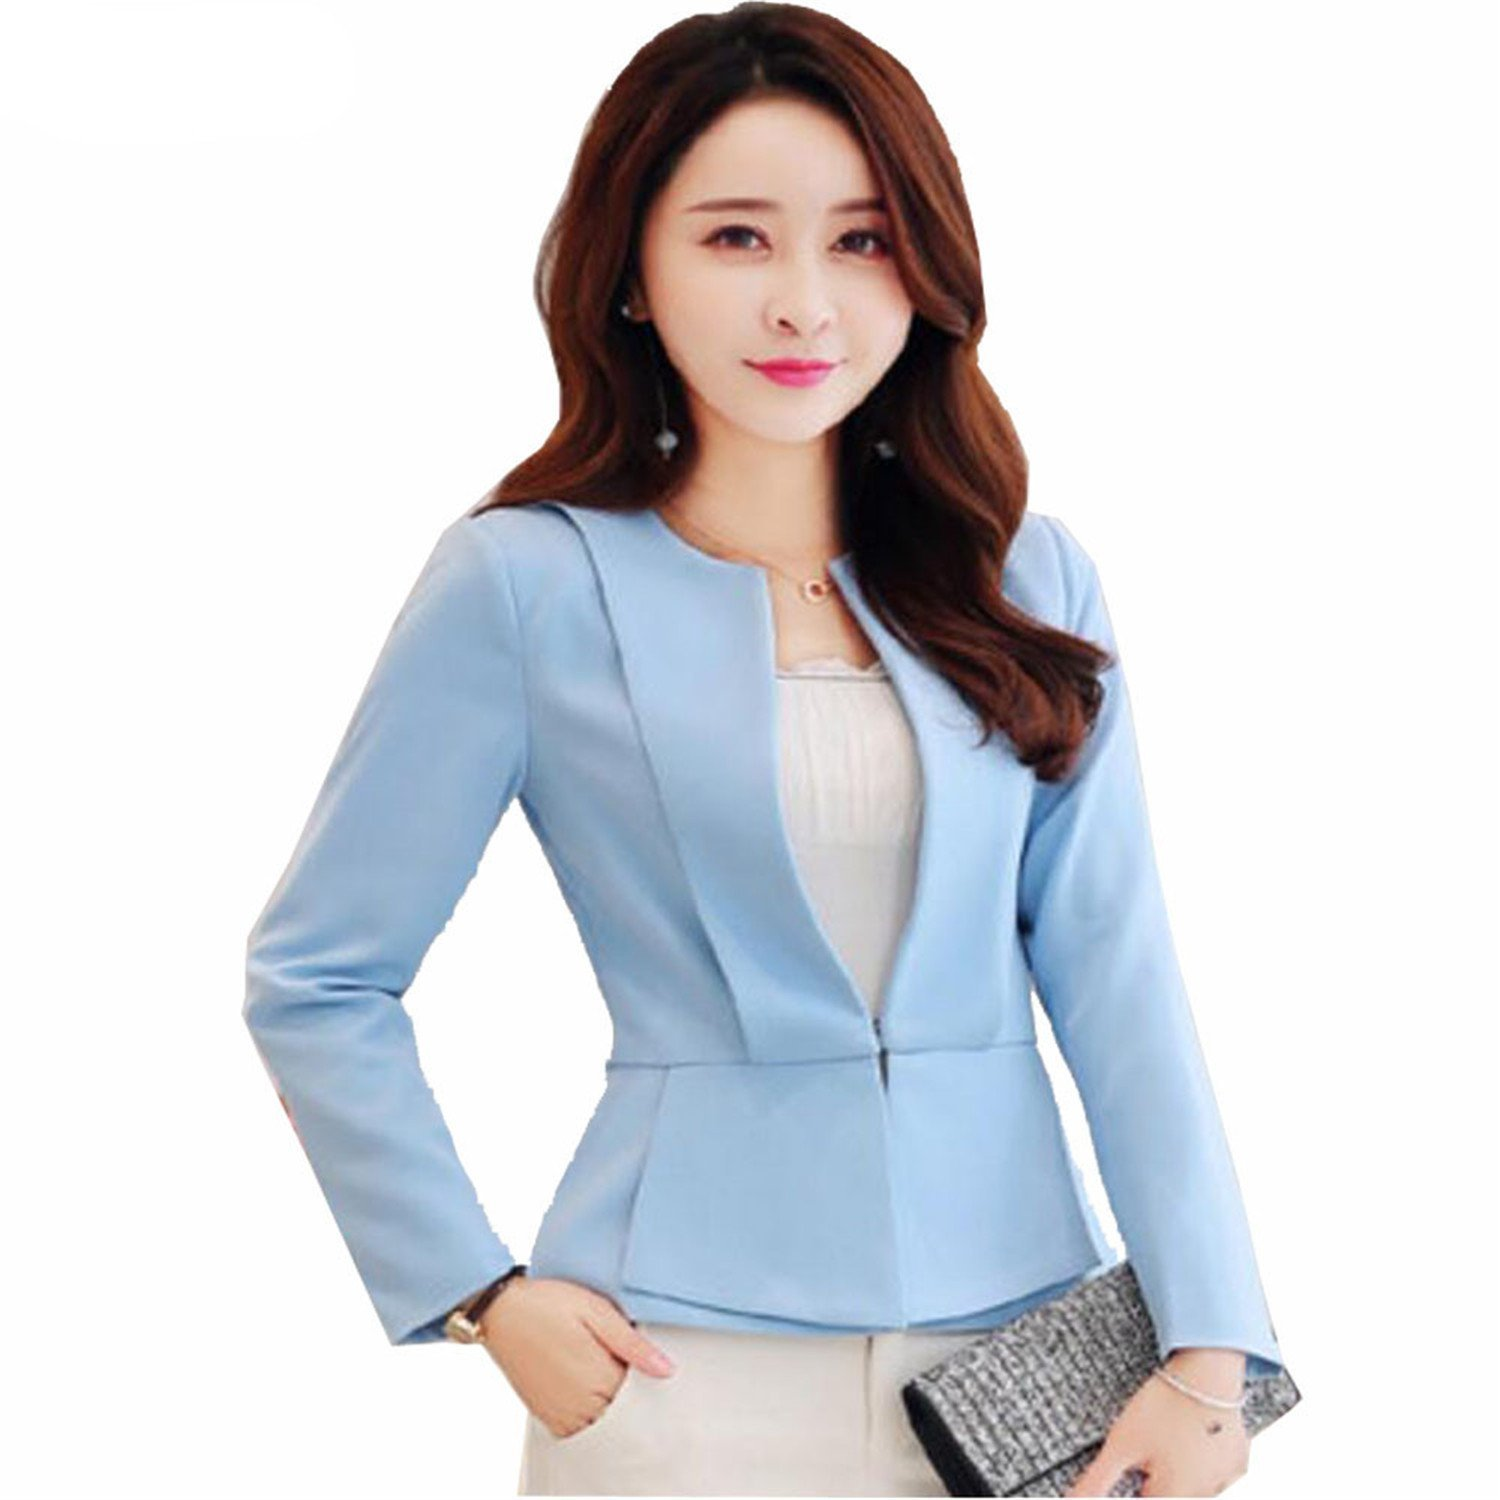 Analytical Notched Wear Female Suits Blazer Casual Slim Long Sleeve Single Button Blazers White Blue Work Formal Jackets Blazer Feminino Back To Search Resultswomen's Clothing Suits & Sets